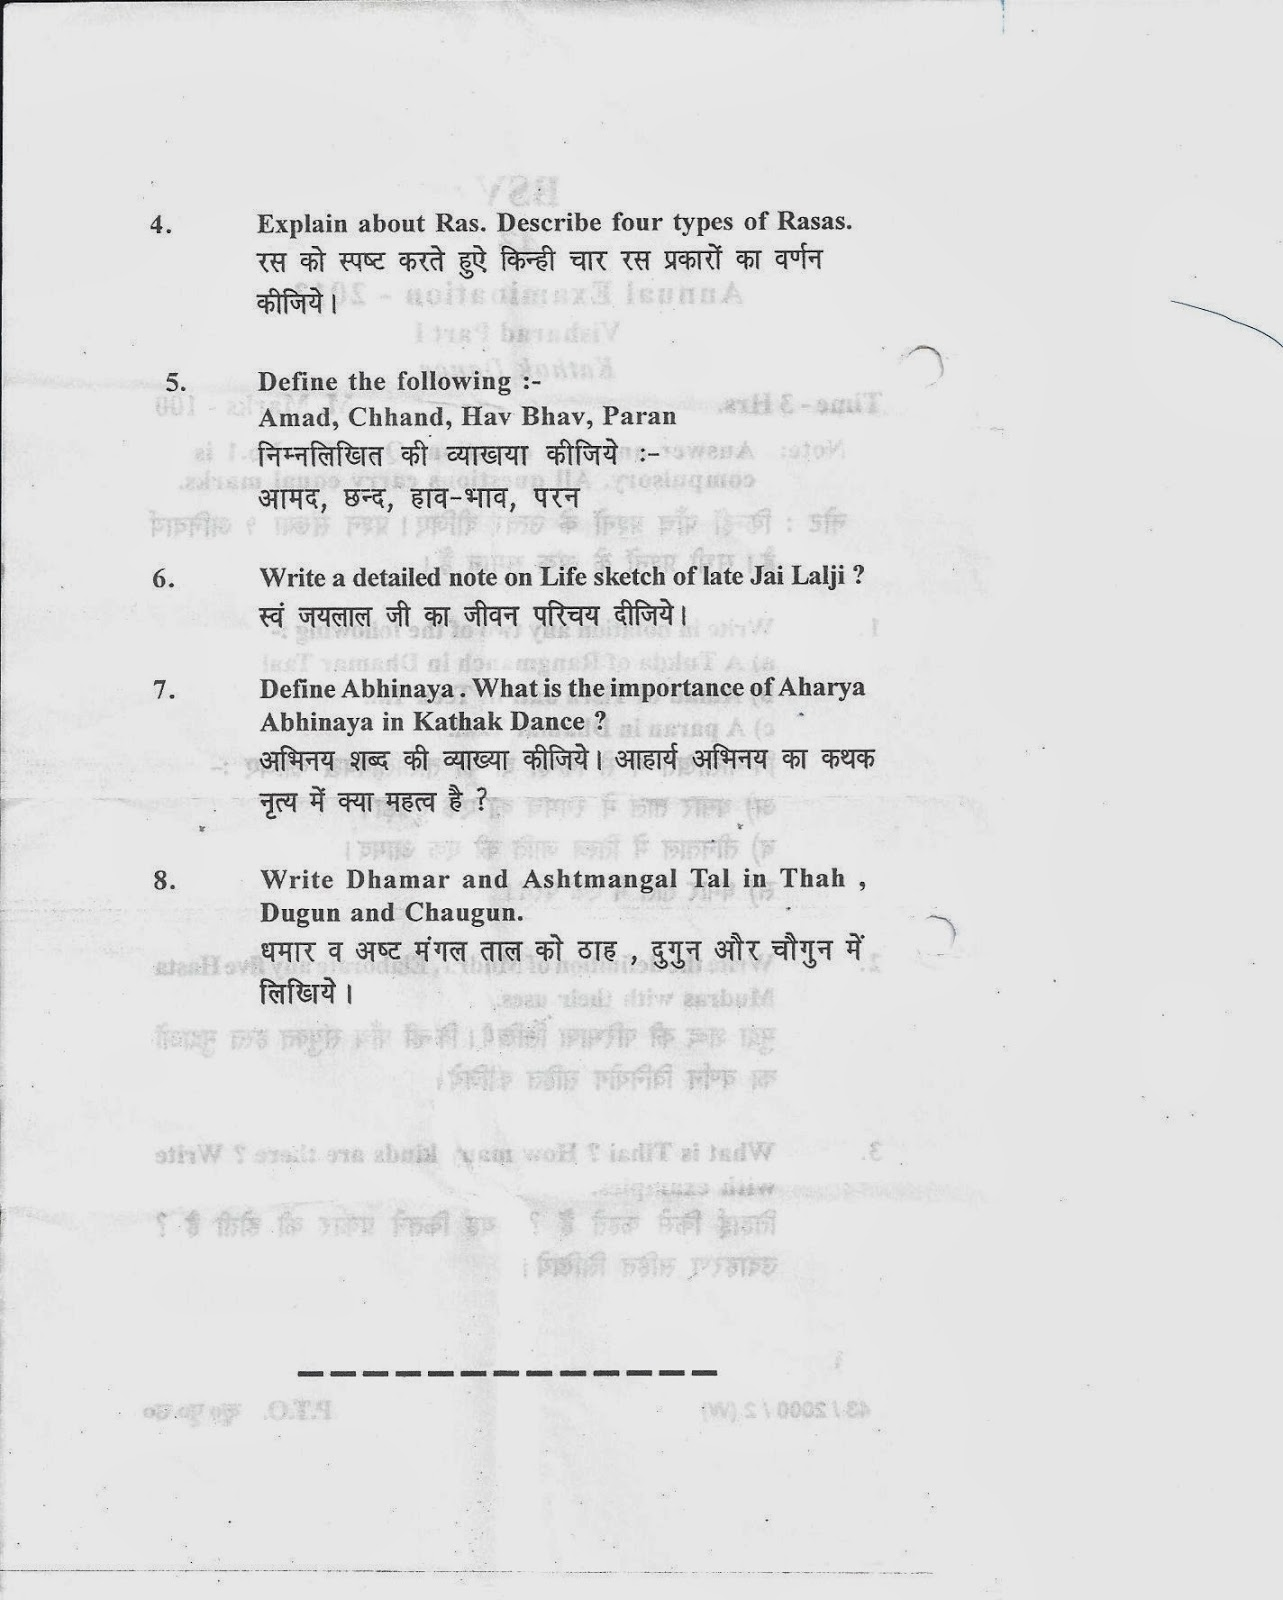 Bhatkhande sangeet vidyapeeth old music question papers 2011